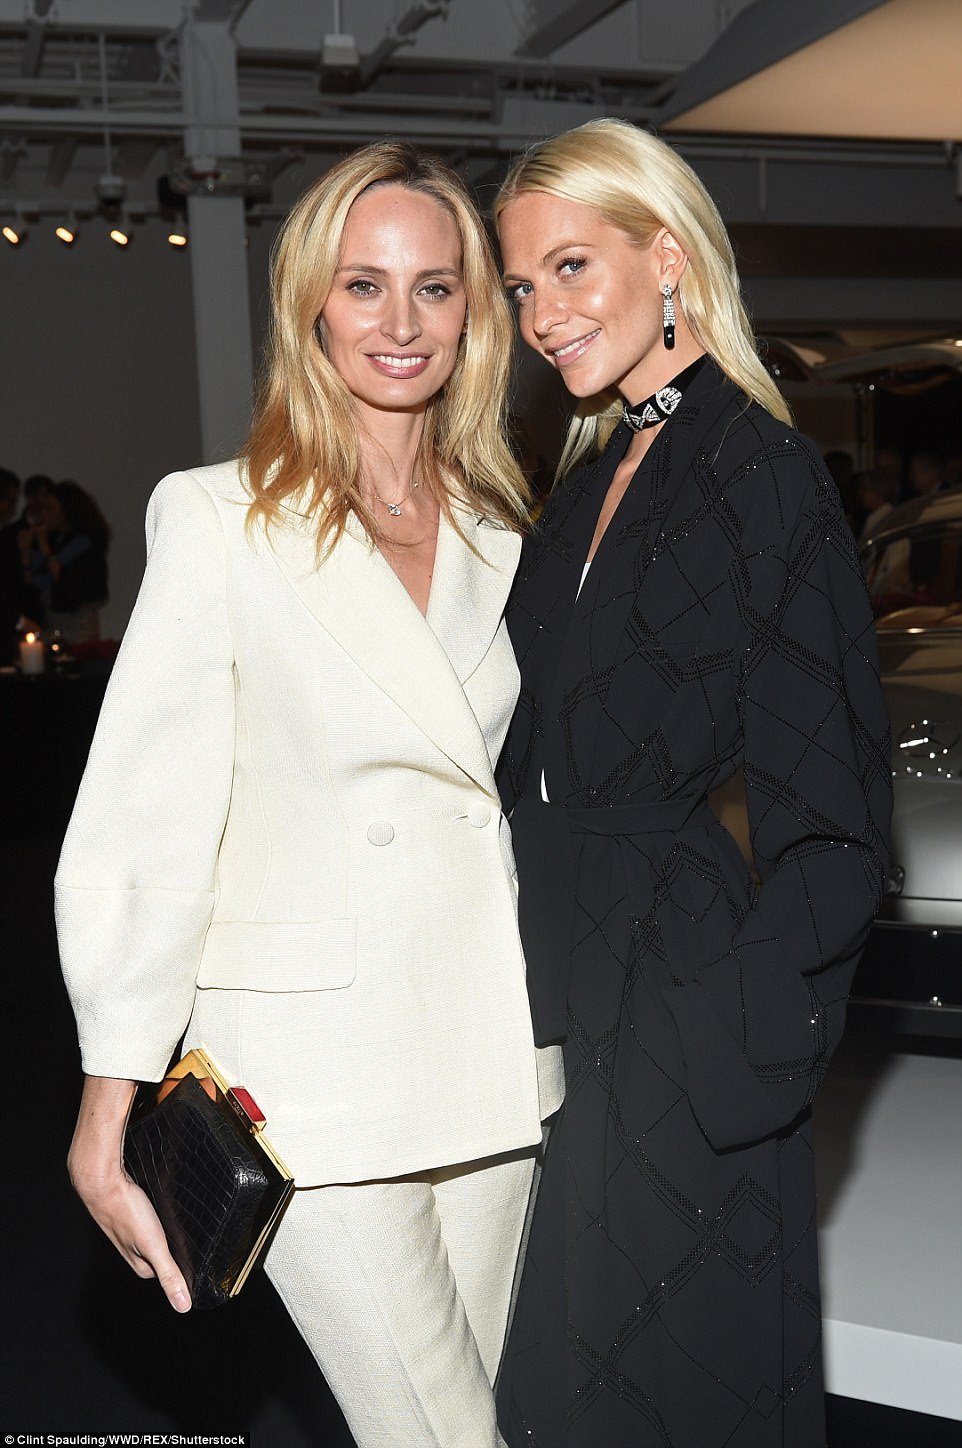 Top coat: Poppy Delevingne also attended - seen here with Lauren Santo Domingo (left) - wearing a silk black trenchcoat patterned with a sparkly diamond print by the designer